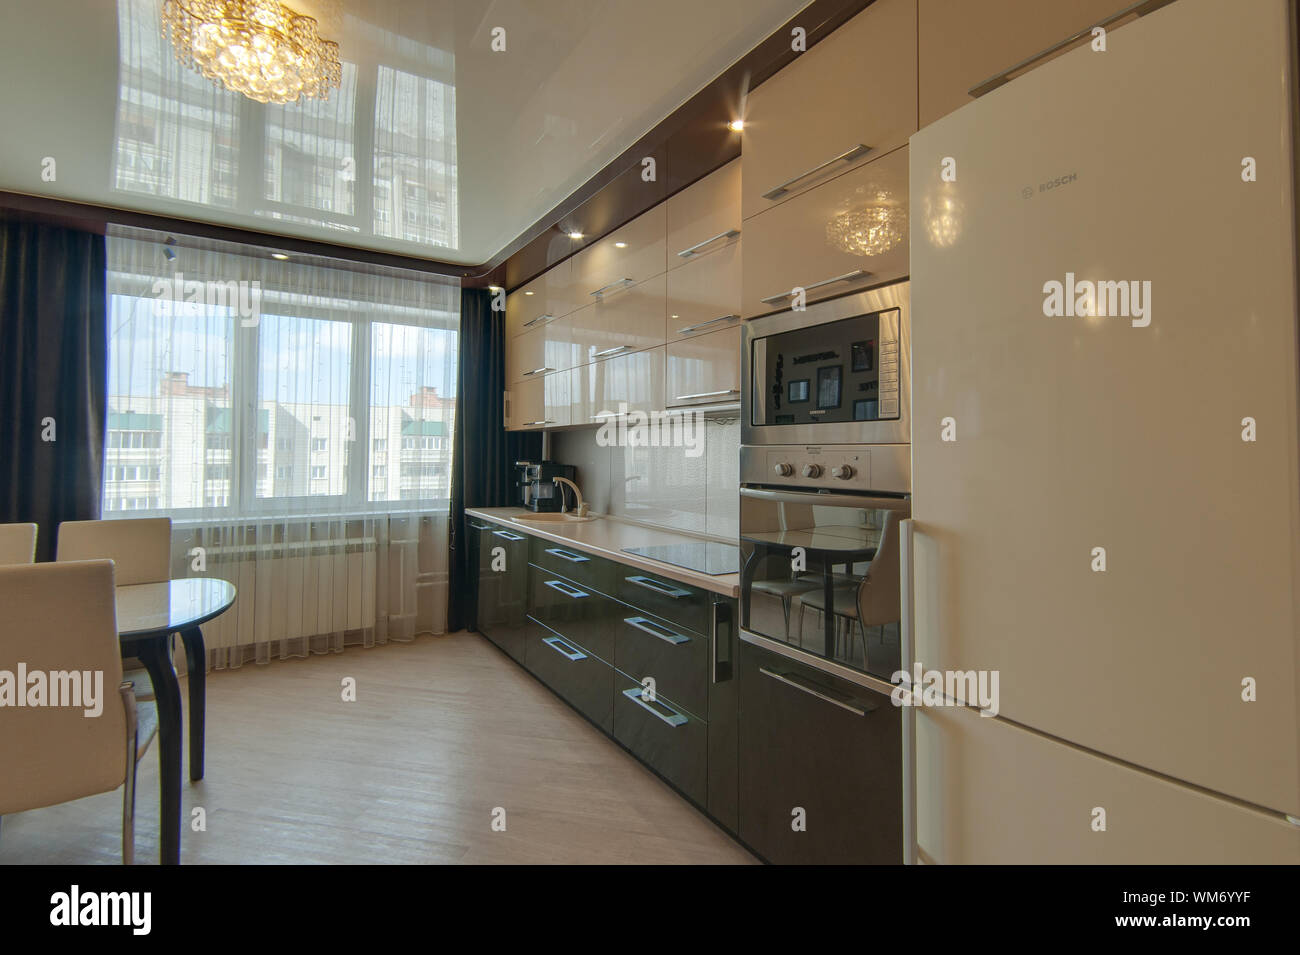 Russia, Moscow- June 13, 2018: interior room apartment ...